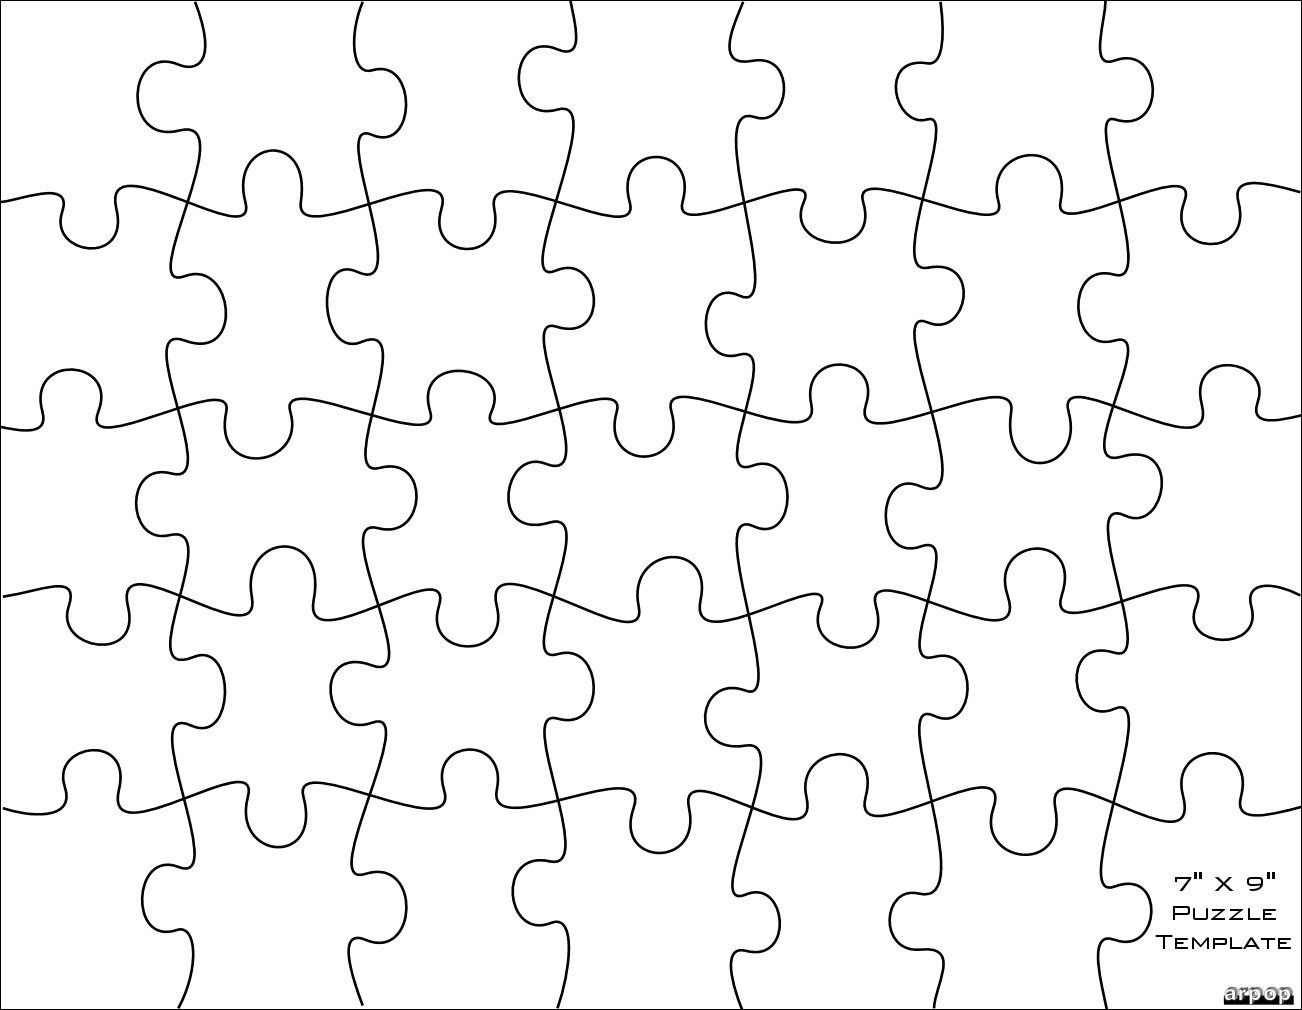 Free Scroll Saw Patternsarpop: Jigsaw Puzzle Templates | School - Create A Printable Jigsaw Puzzle